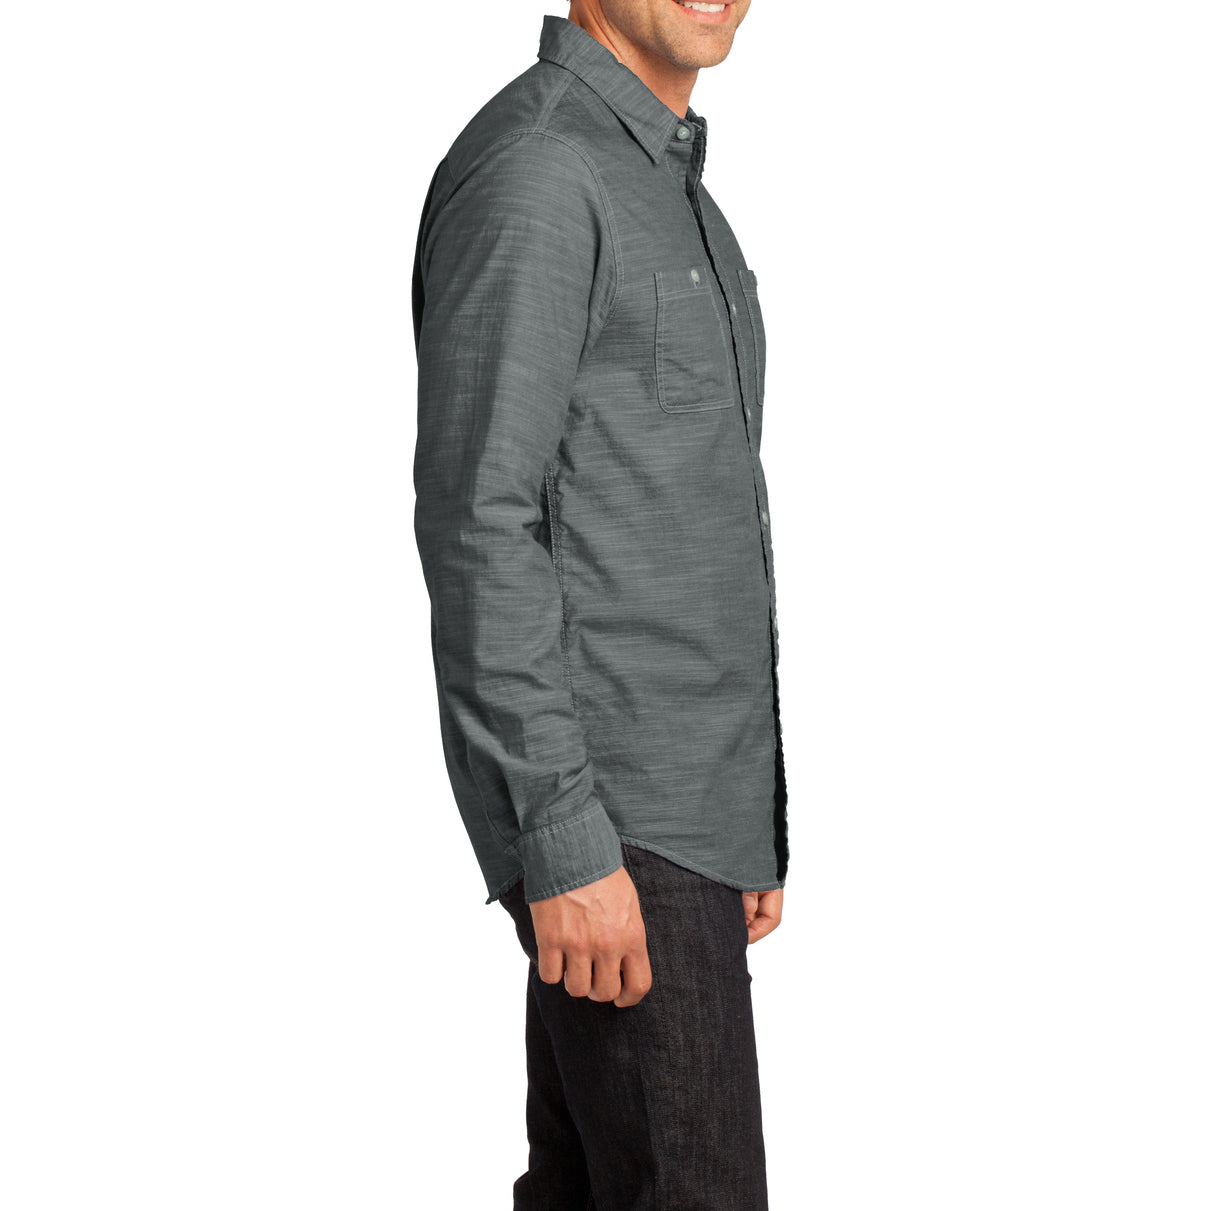 Mens Long Sleeve Washed Woven Shirt - Grey - Side